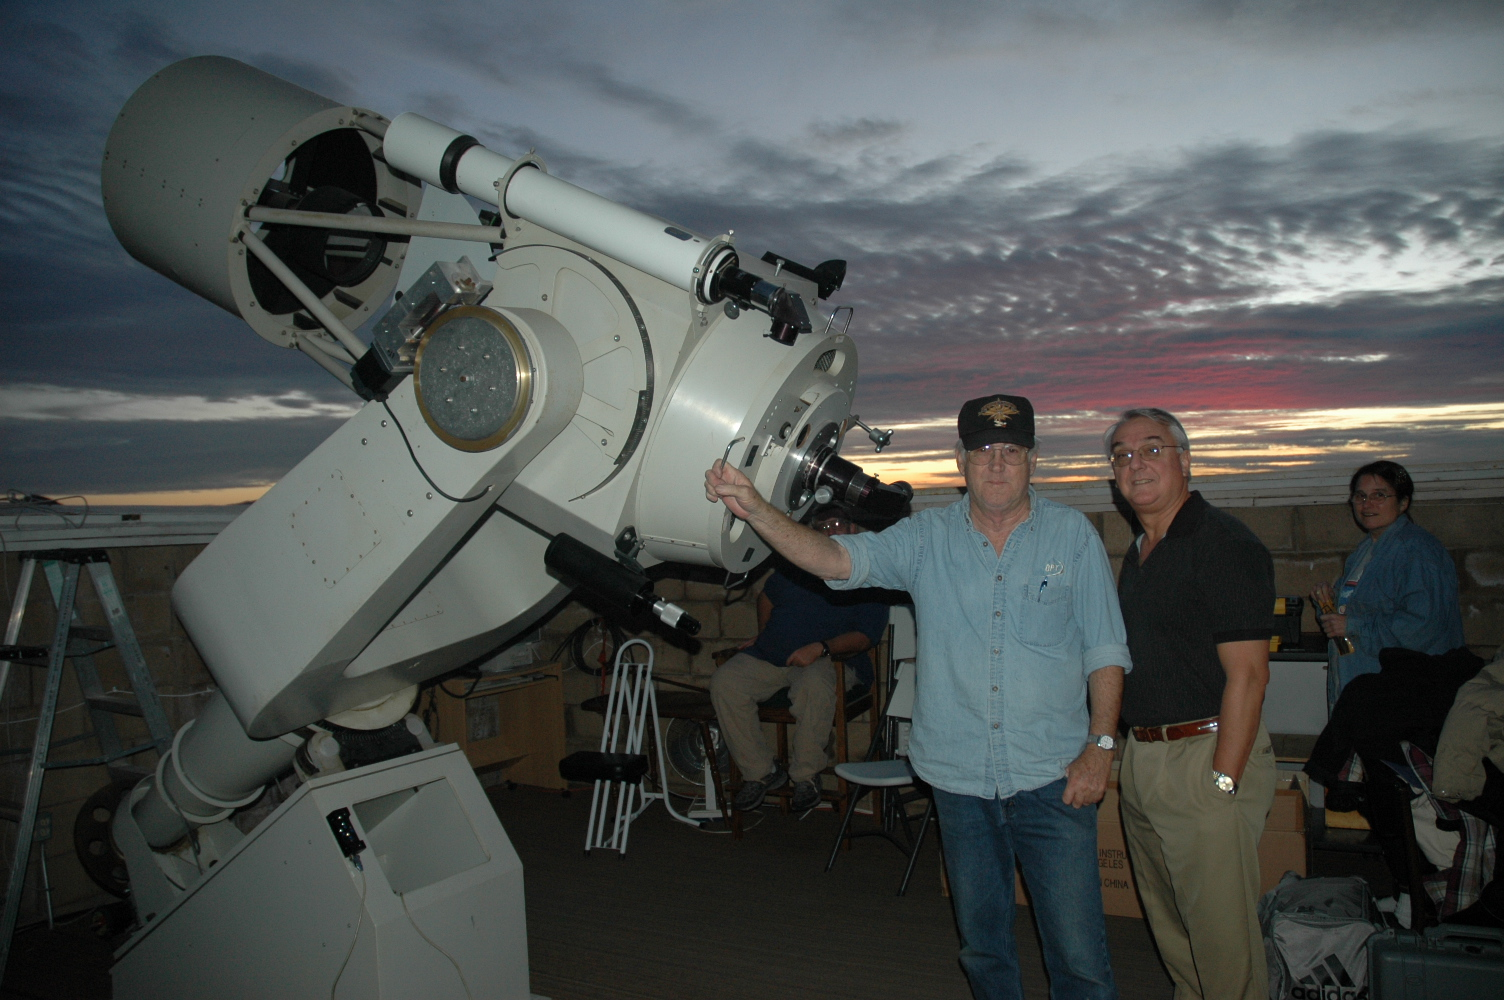 Knoll Observatory Photo